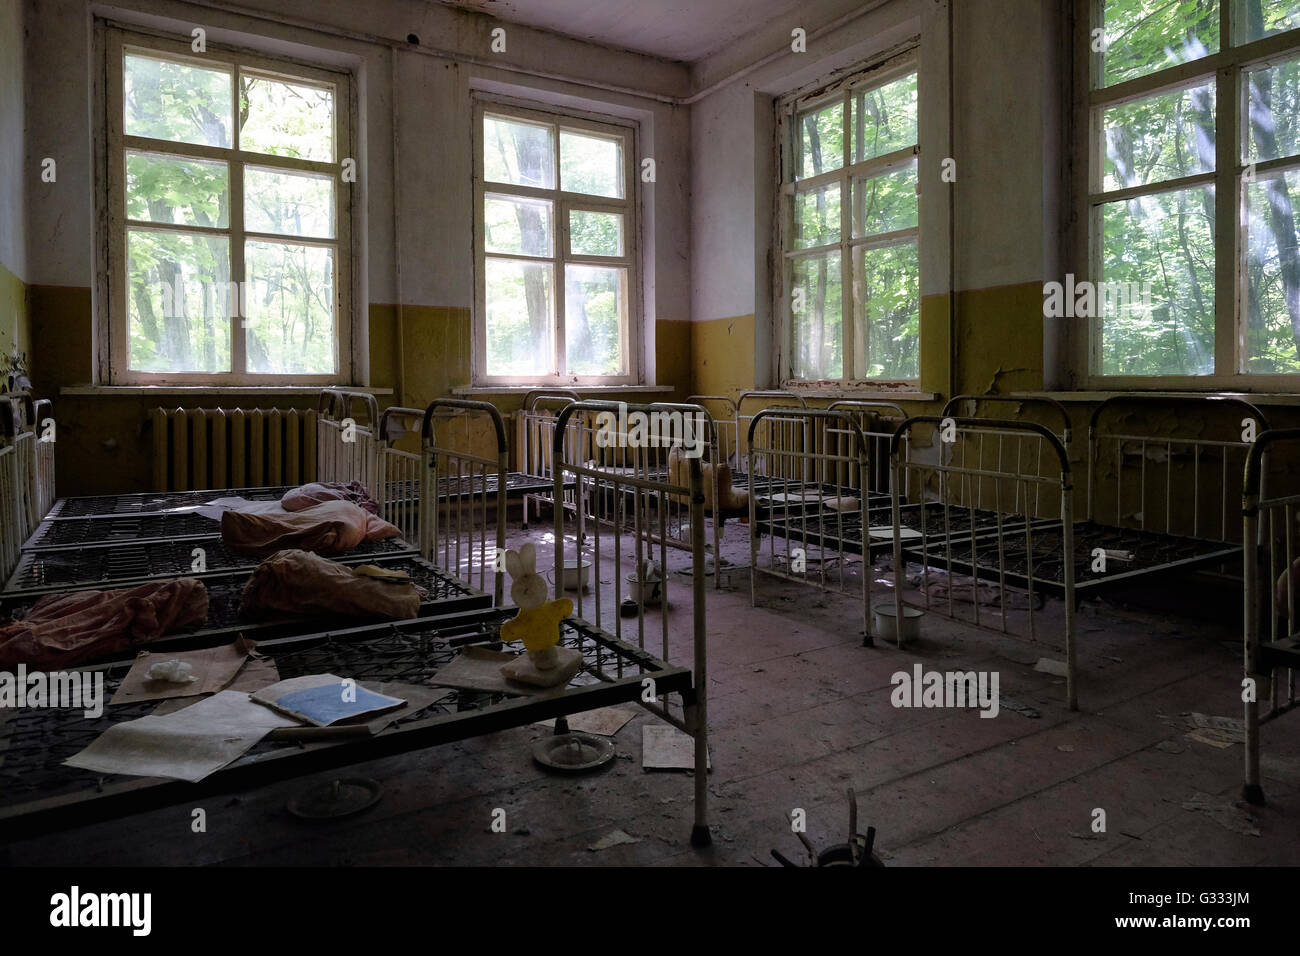 Children's beds stand in the abandoned kindergarten of the deserted village of Kopachi located inside the Chernobyl - Stock Image